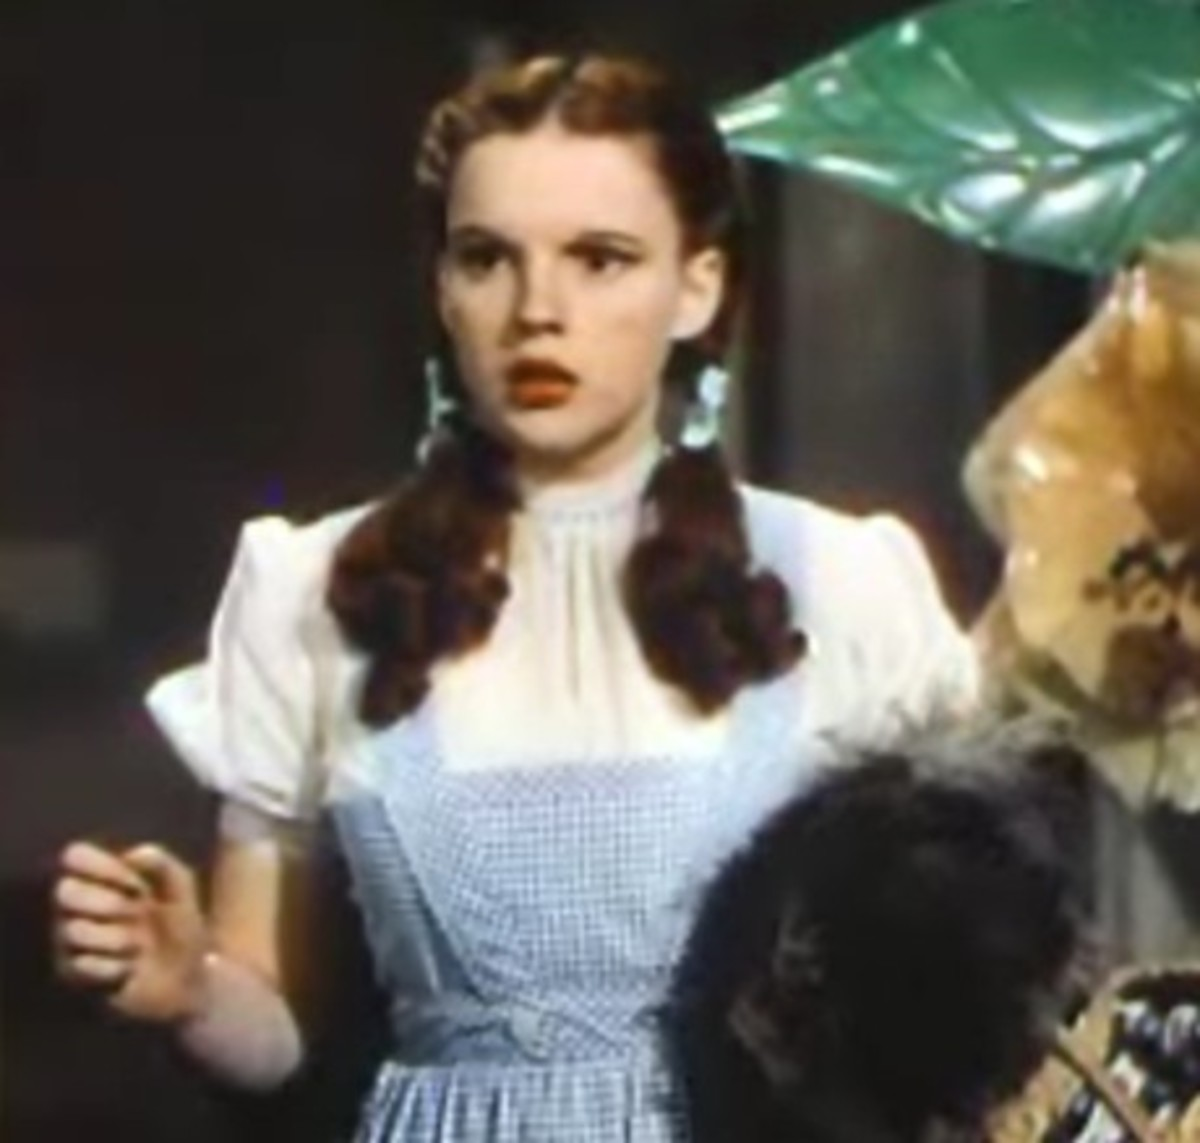 Judy Garland's face doesn't look very long in the Wizard of Oz.  With a close-cropped style around her head, her braids fluff out over her chest--this makes her face look round, like that of the young girl she's playing.